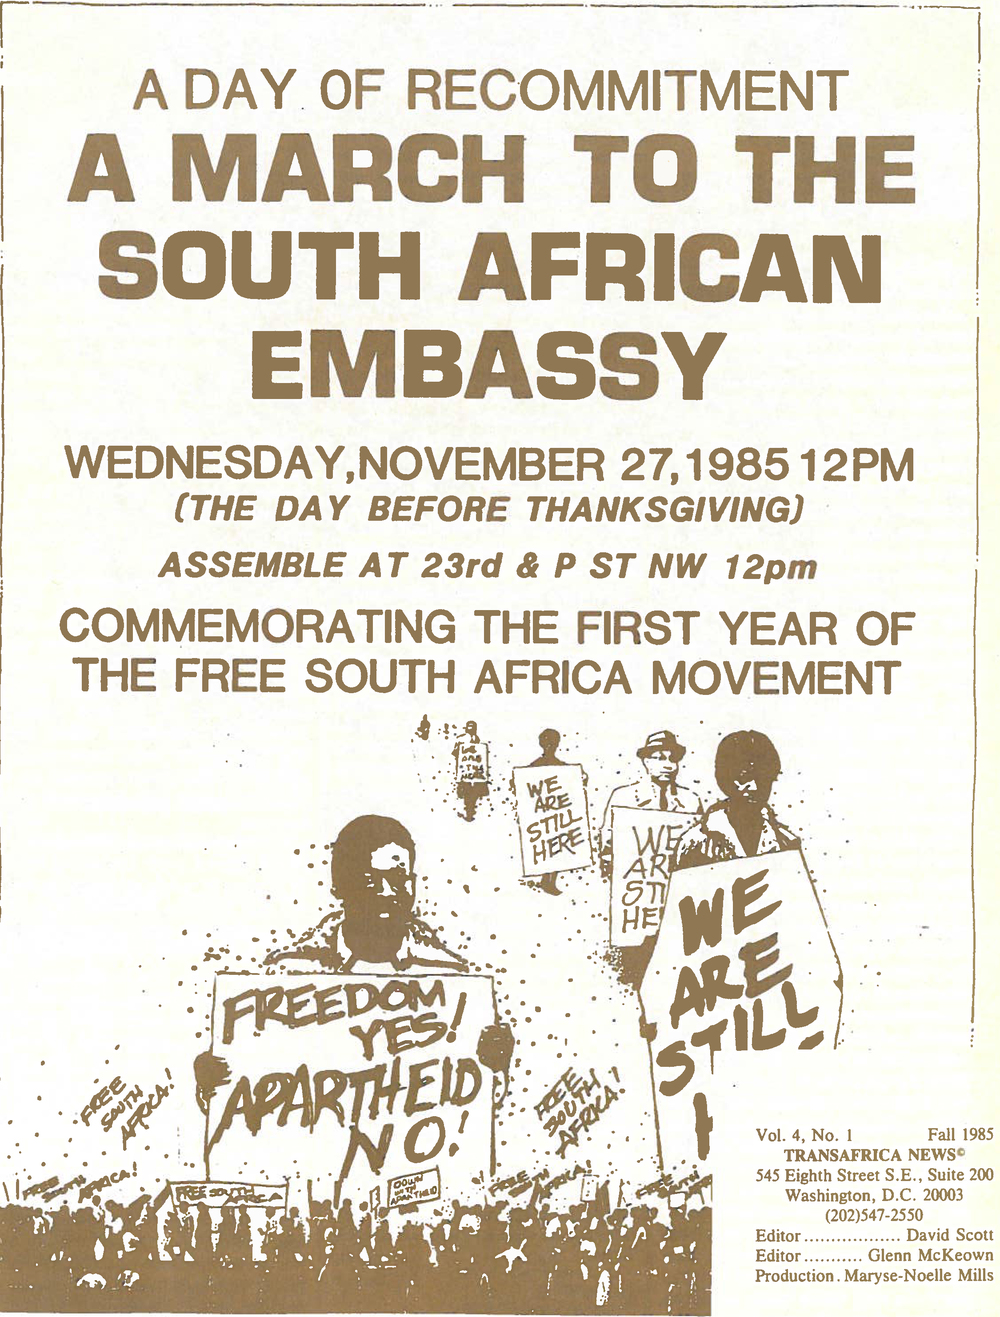 A March to the South African Embassy